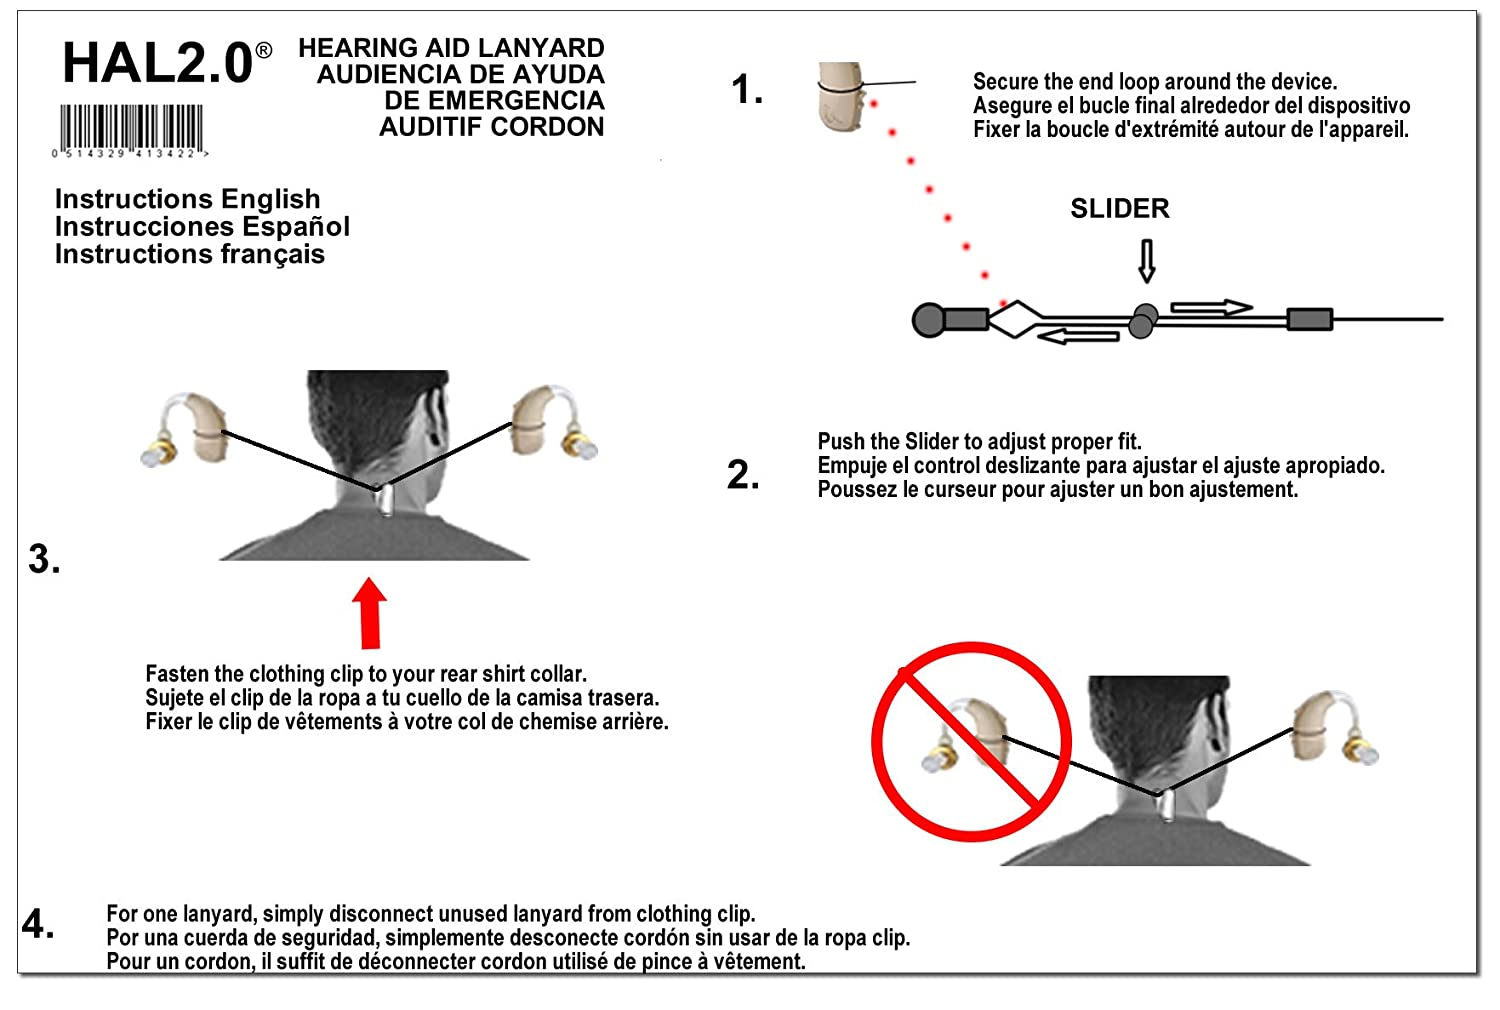 Amazon.com: Hearing Aid Lanyard / Strap - 100% Compatibility With All Hearing Aids: Health & Personal Care